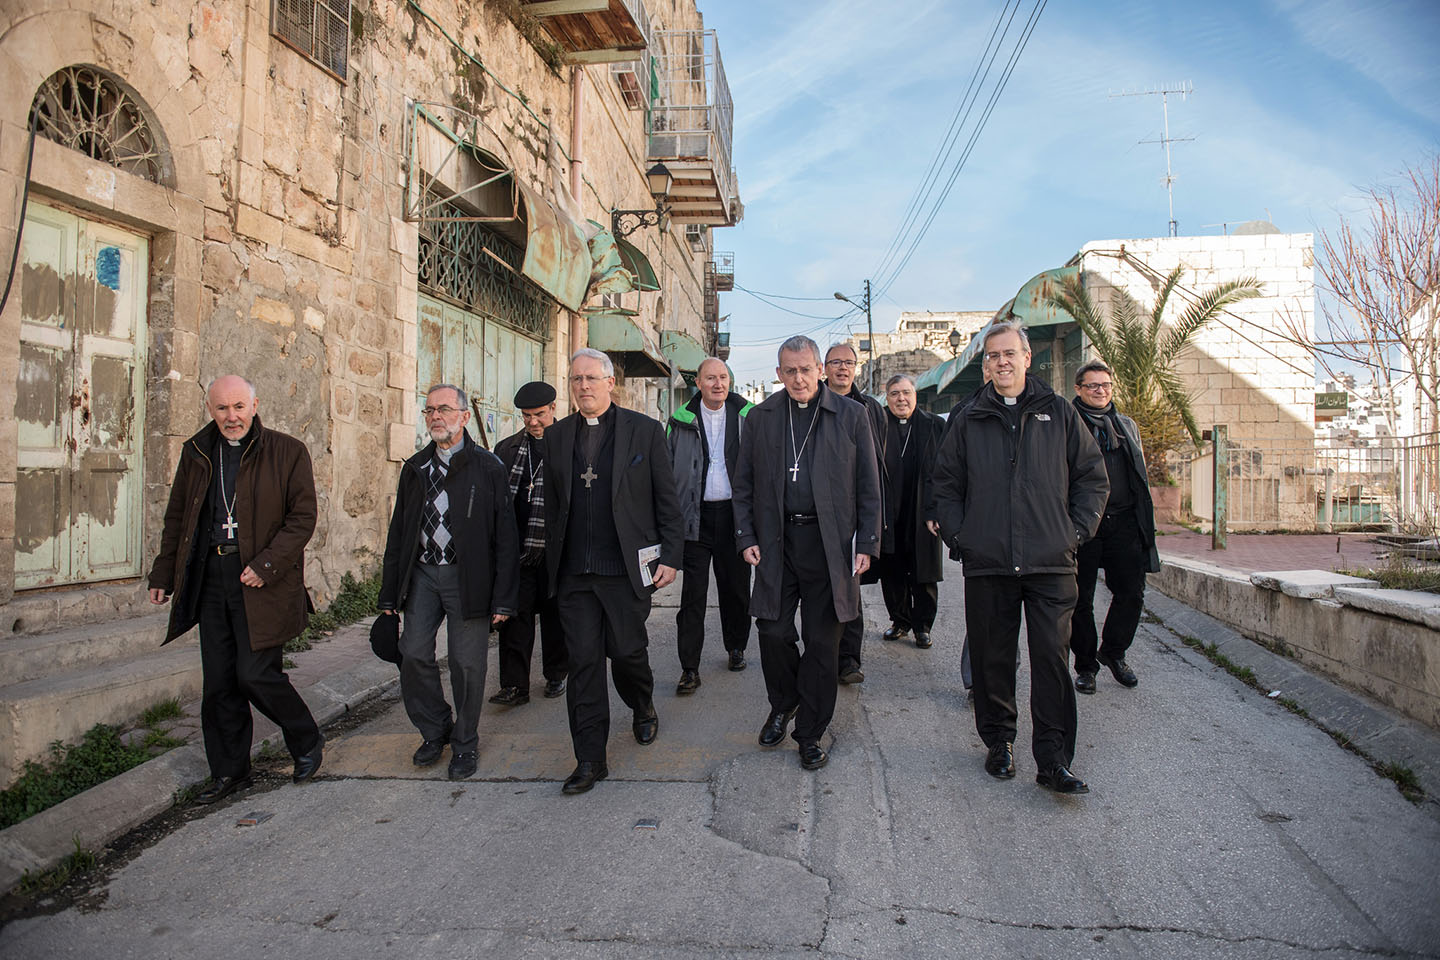 web-2017-holy-land-coordination-meeting-mazur-catholicnews-org-uk-cc